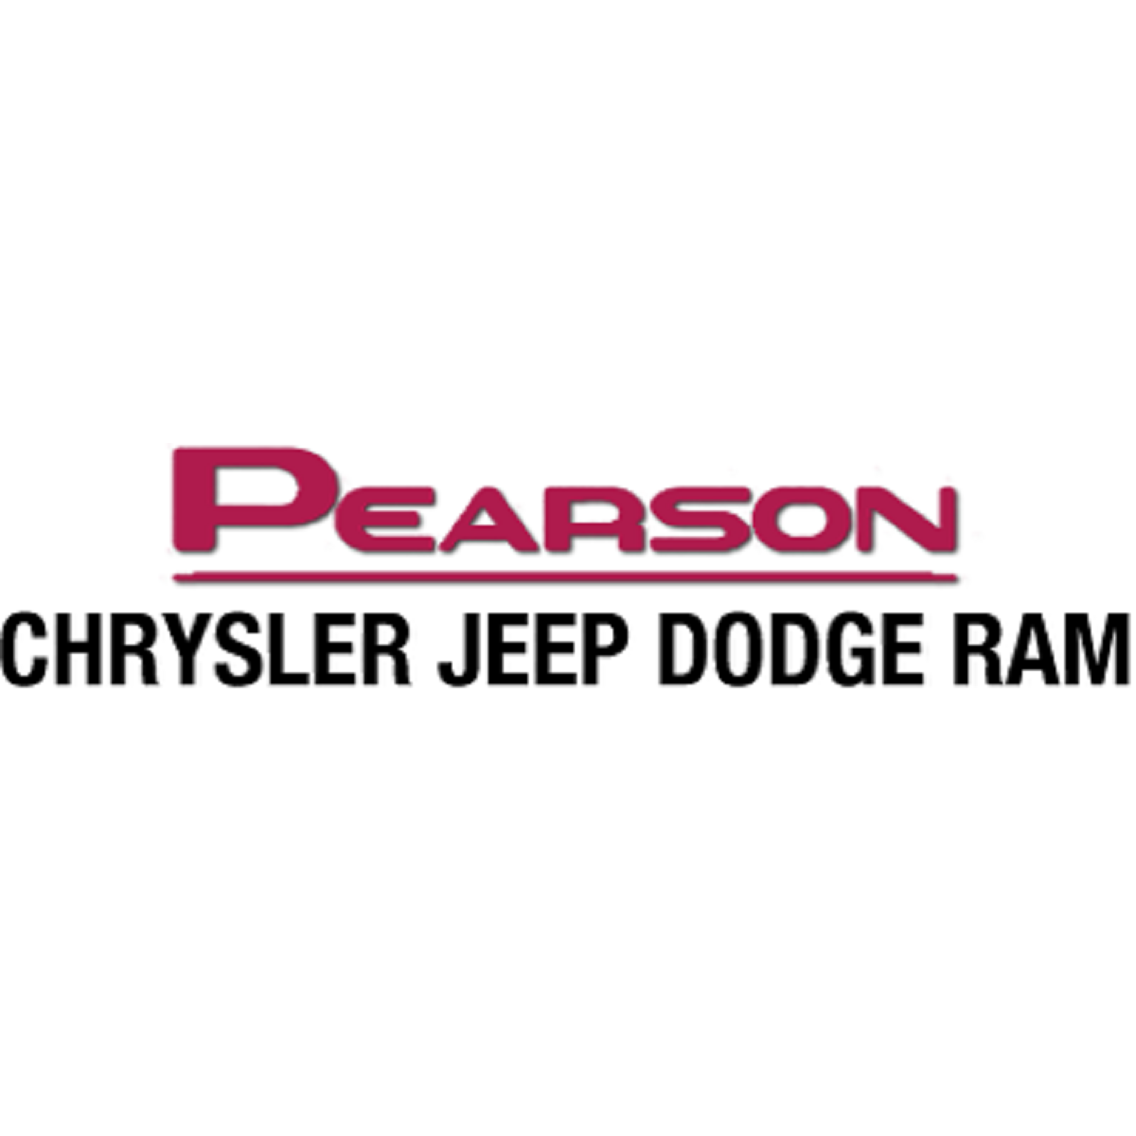 Pearson Chrysler Jeep Dodge